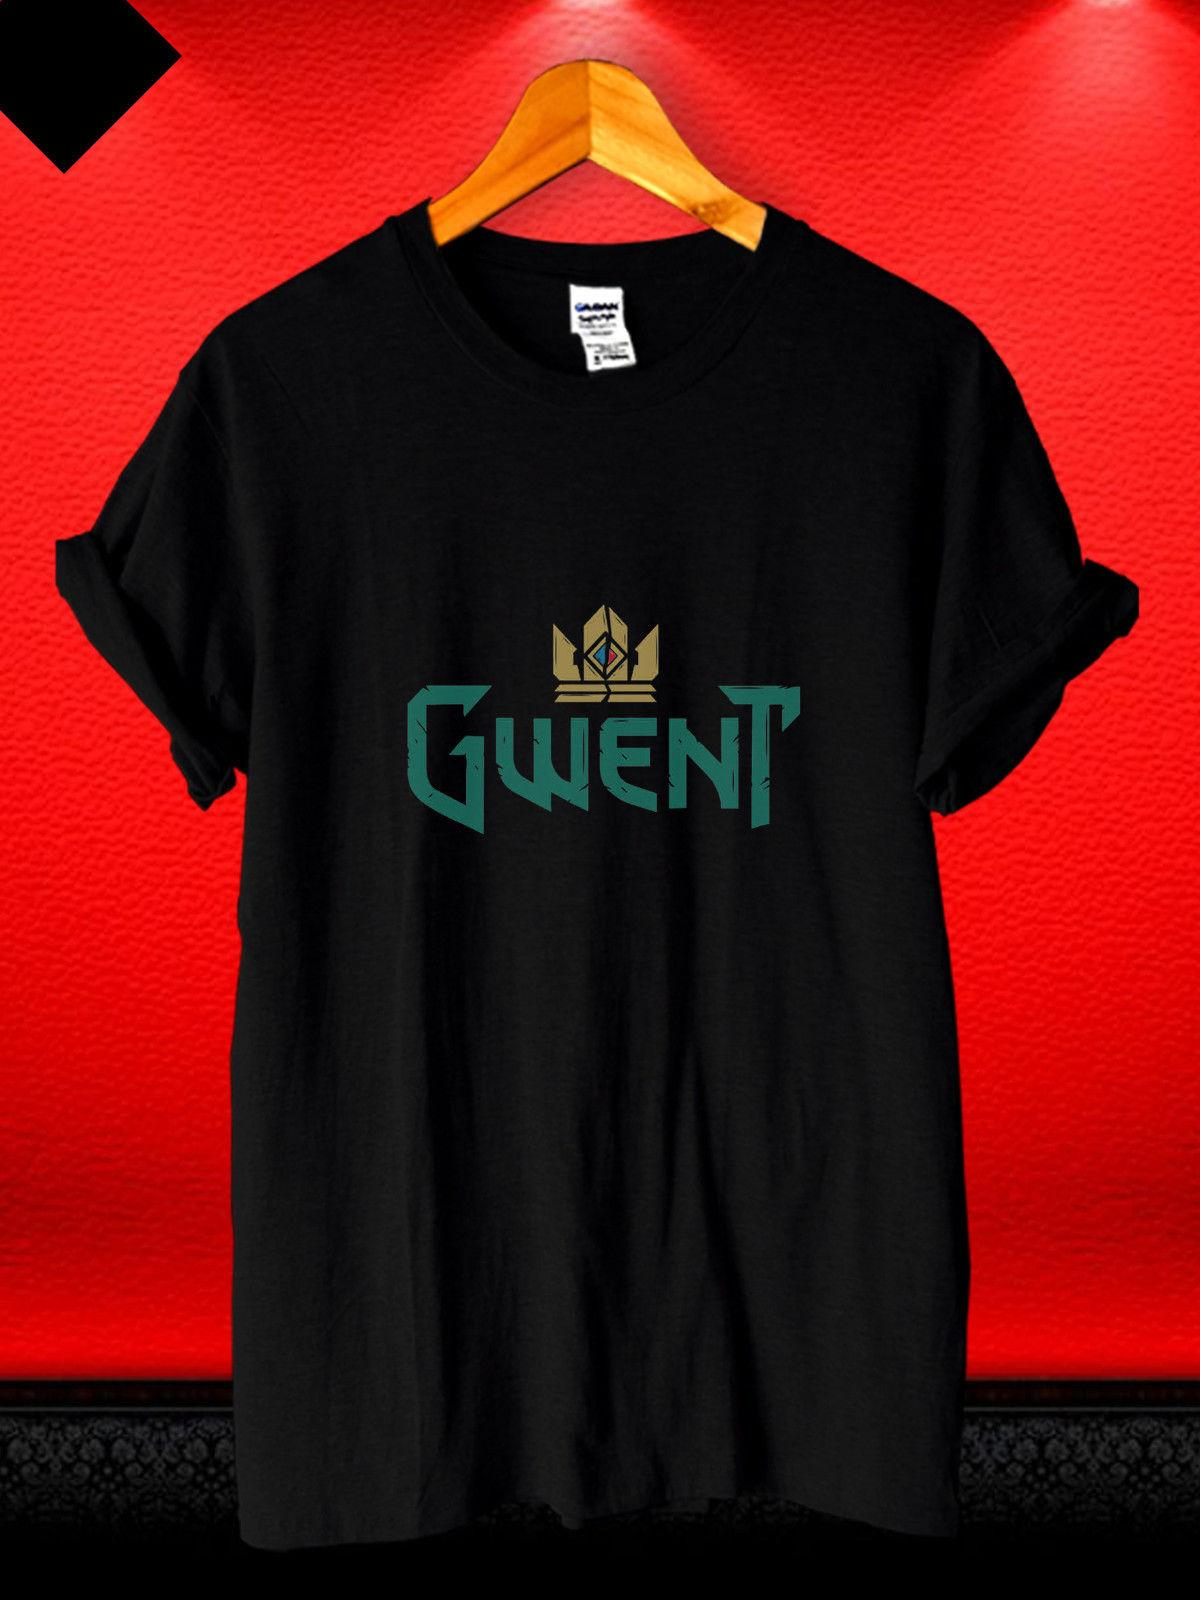 a77629c22 The Witcher Gwent Game Logo CCG Simple Casual Men'S T Shirt  S,M,L,XL,2XL,3XL Funny Unisex Tee Random T Shirts Poker T Shirts From  Stshirt, $12.96| DHgate.